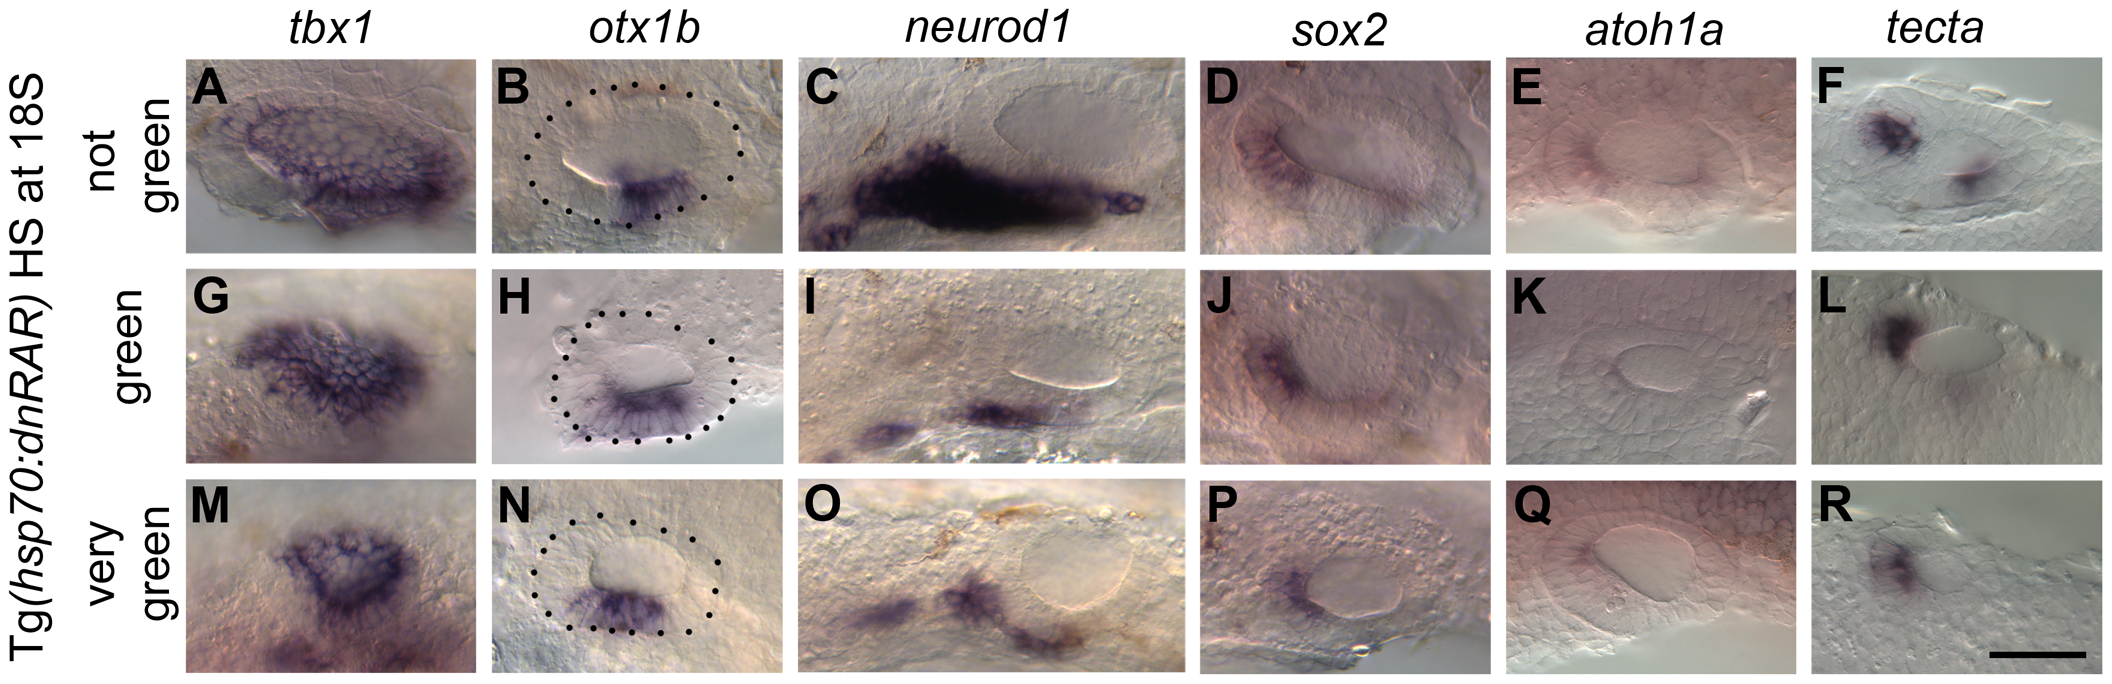 Heatshock of <i>Tg(hsp70:dnRAR)</i> embryos leads to an expansion of otic <i>otx1b</i> and a loss of <i>neurod1</i> expression.